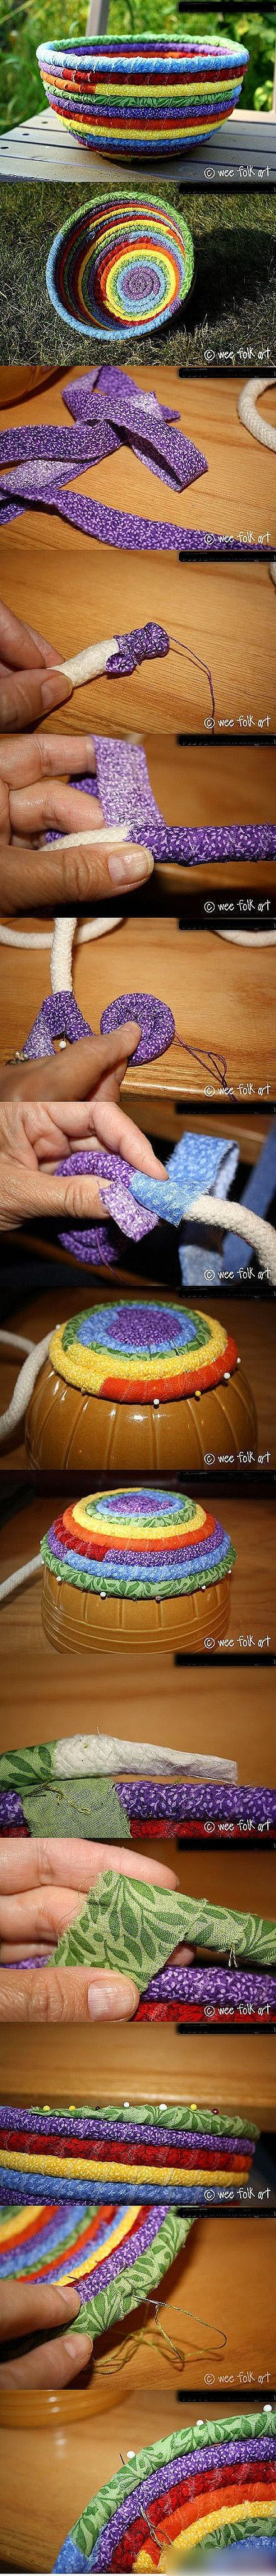 Rope basket, i have done this before, but these instructions are the best I have seen!